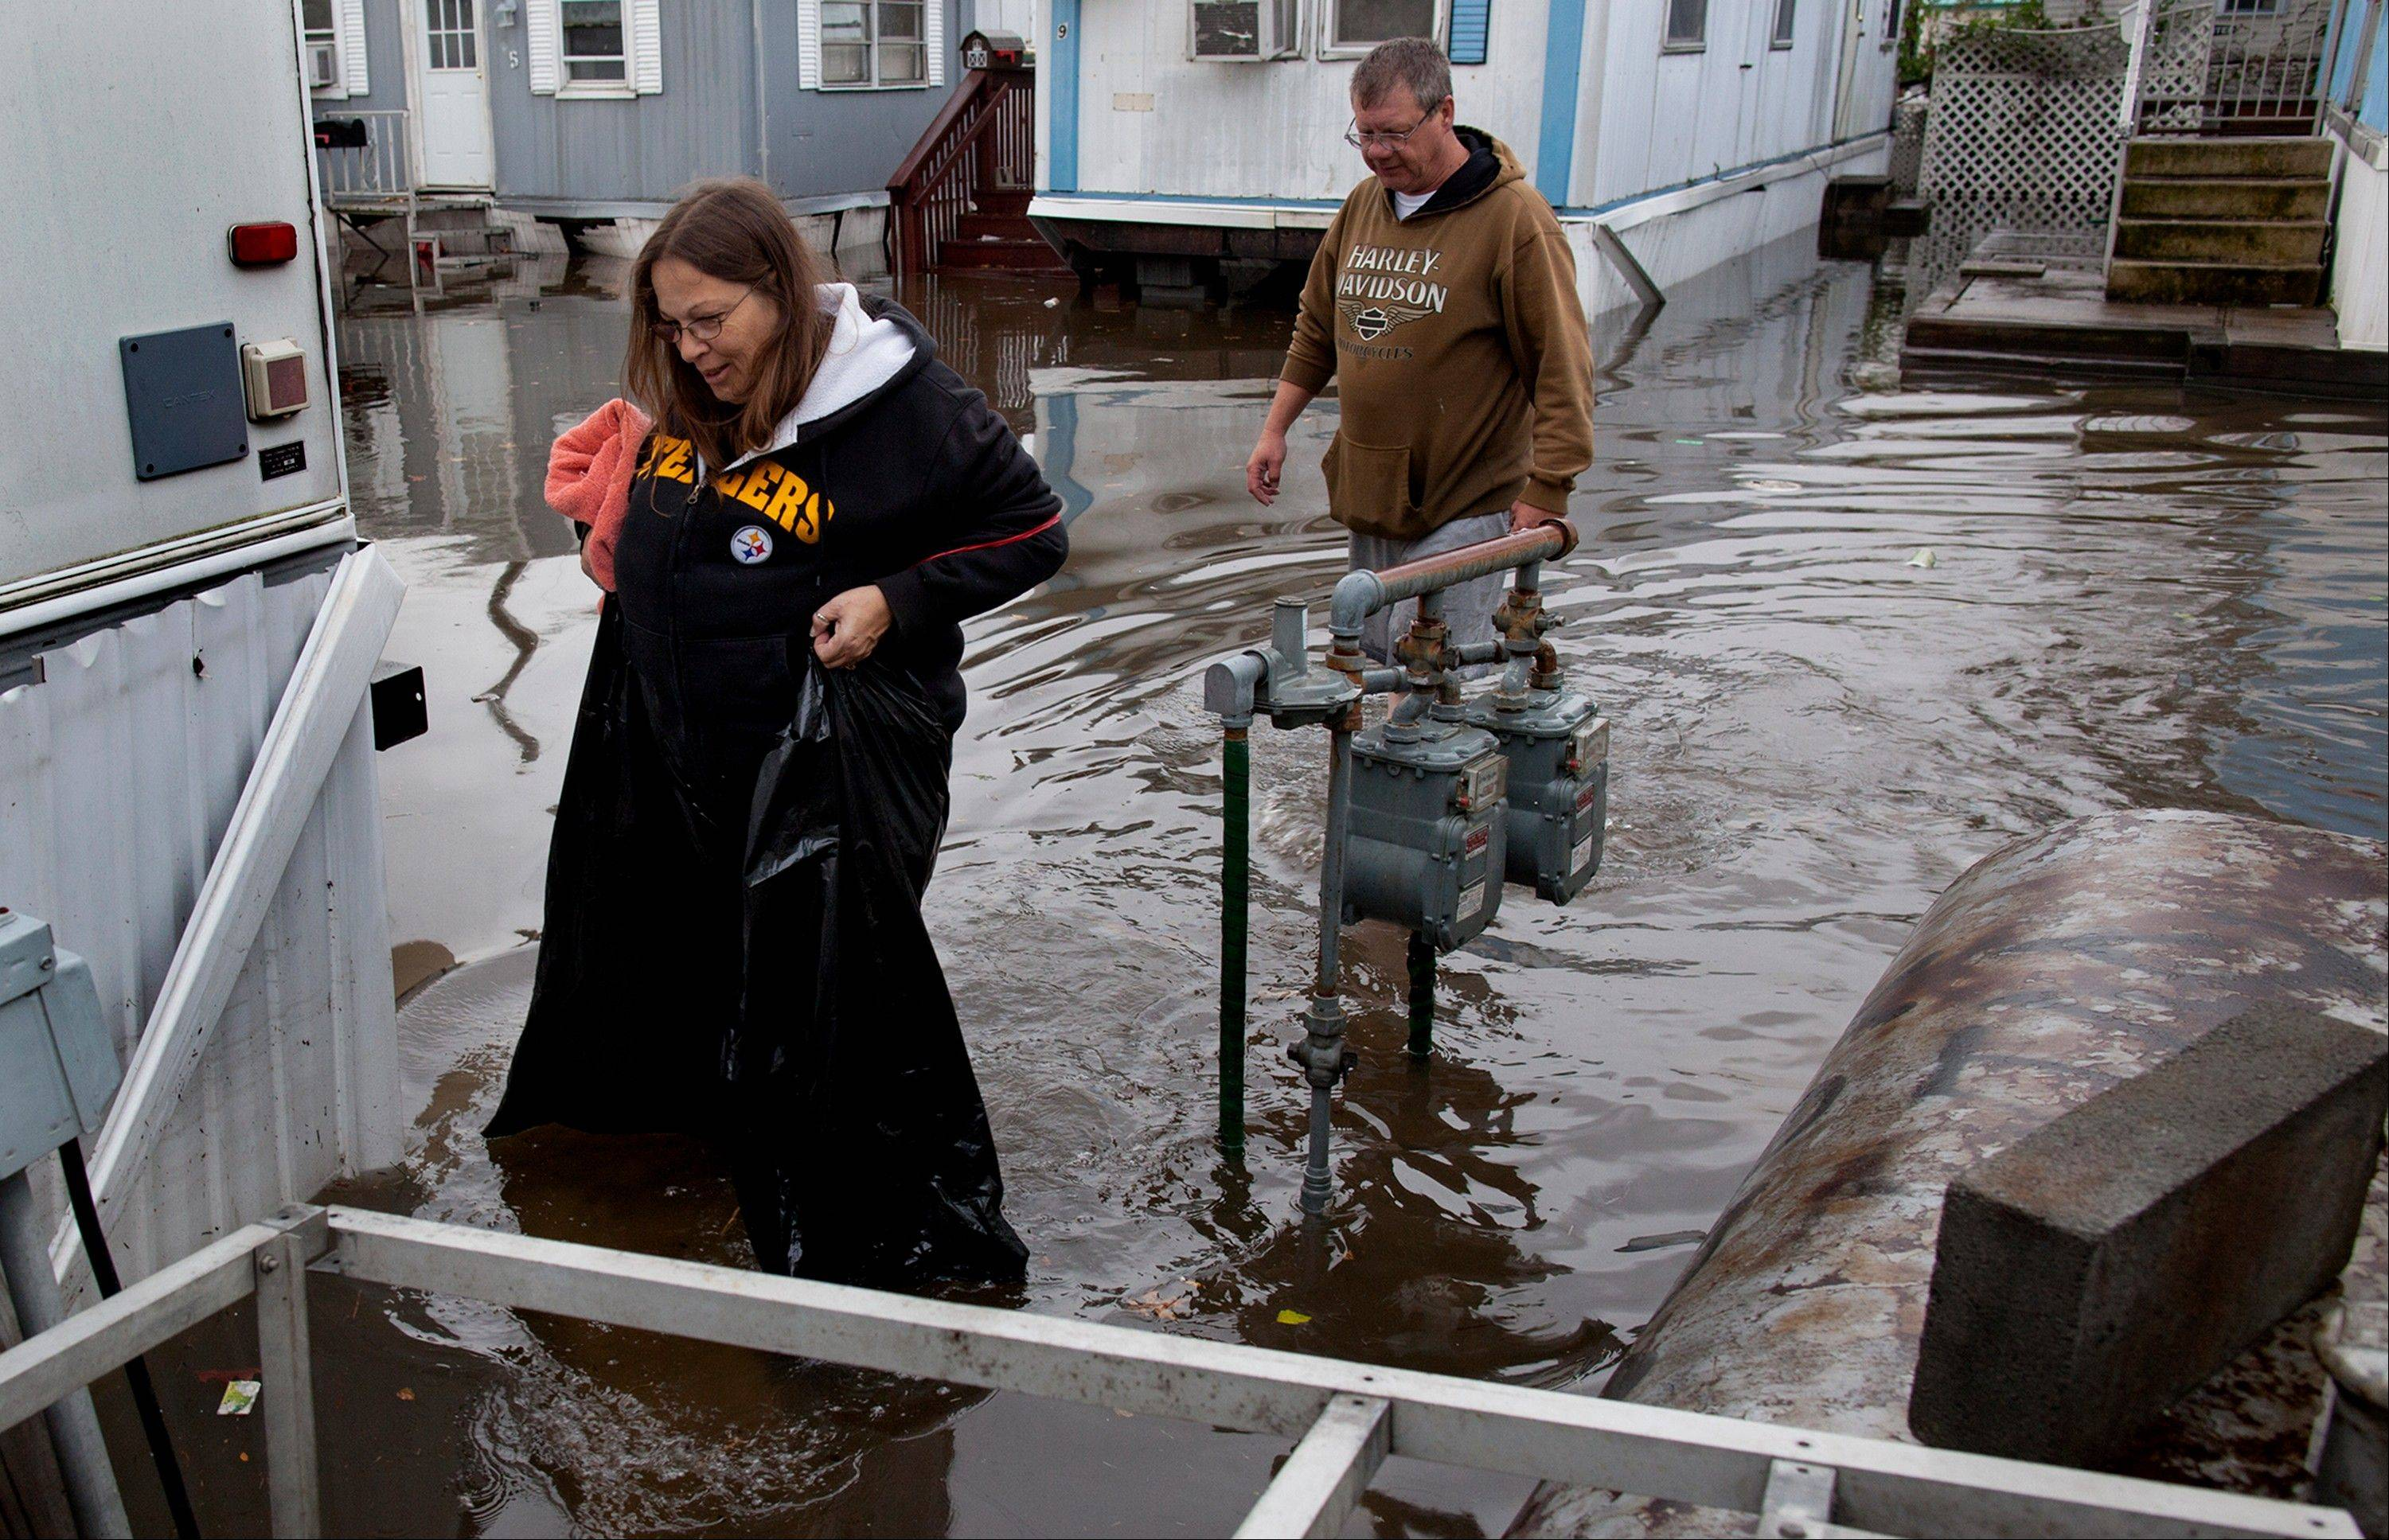 Using garbage bags to keep her waist dry, Mary Ann Tobias, and Walter Chaney of Moonachie, N.J. walk from their flooded home in the Metropolitan Trailer Park in Moonachie, N.J. Tuesday, Oct. 30, 2012 in the wake of superstorm Sandy.